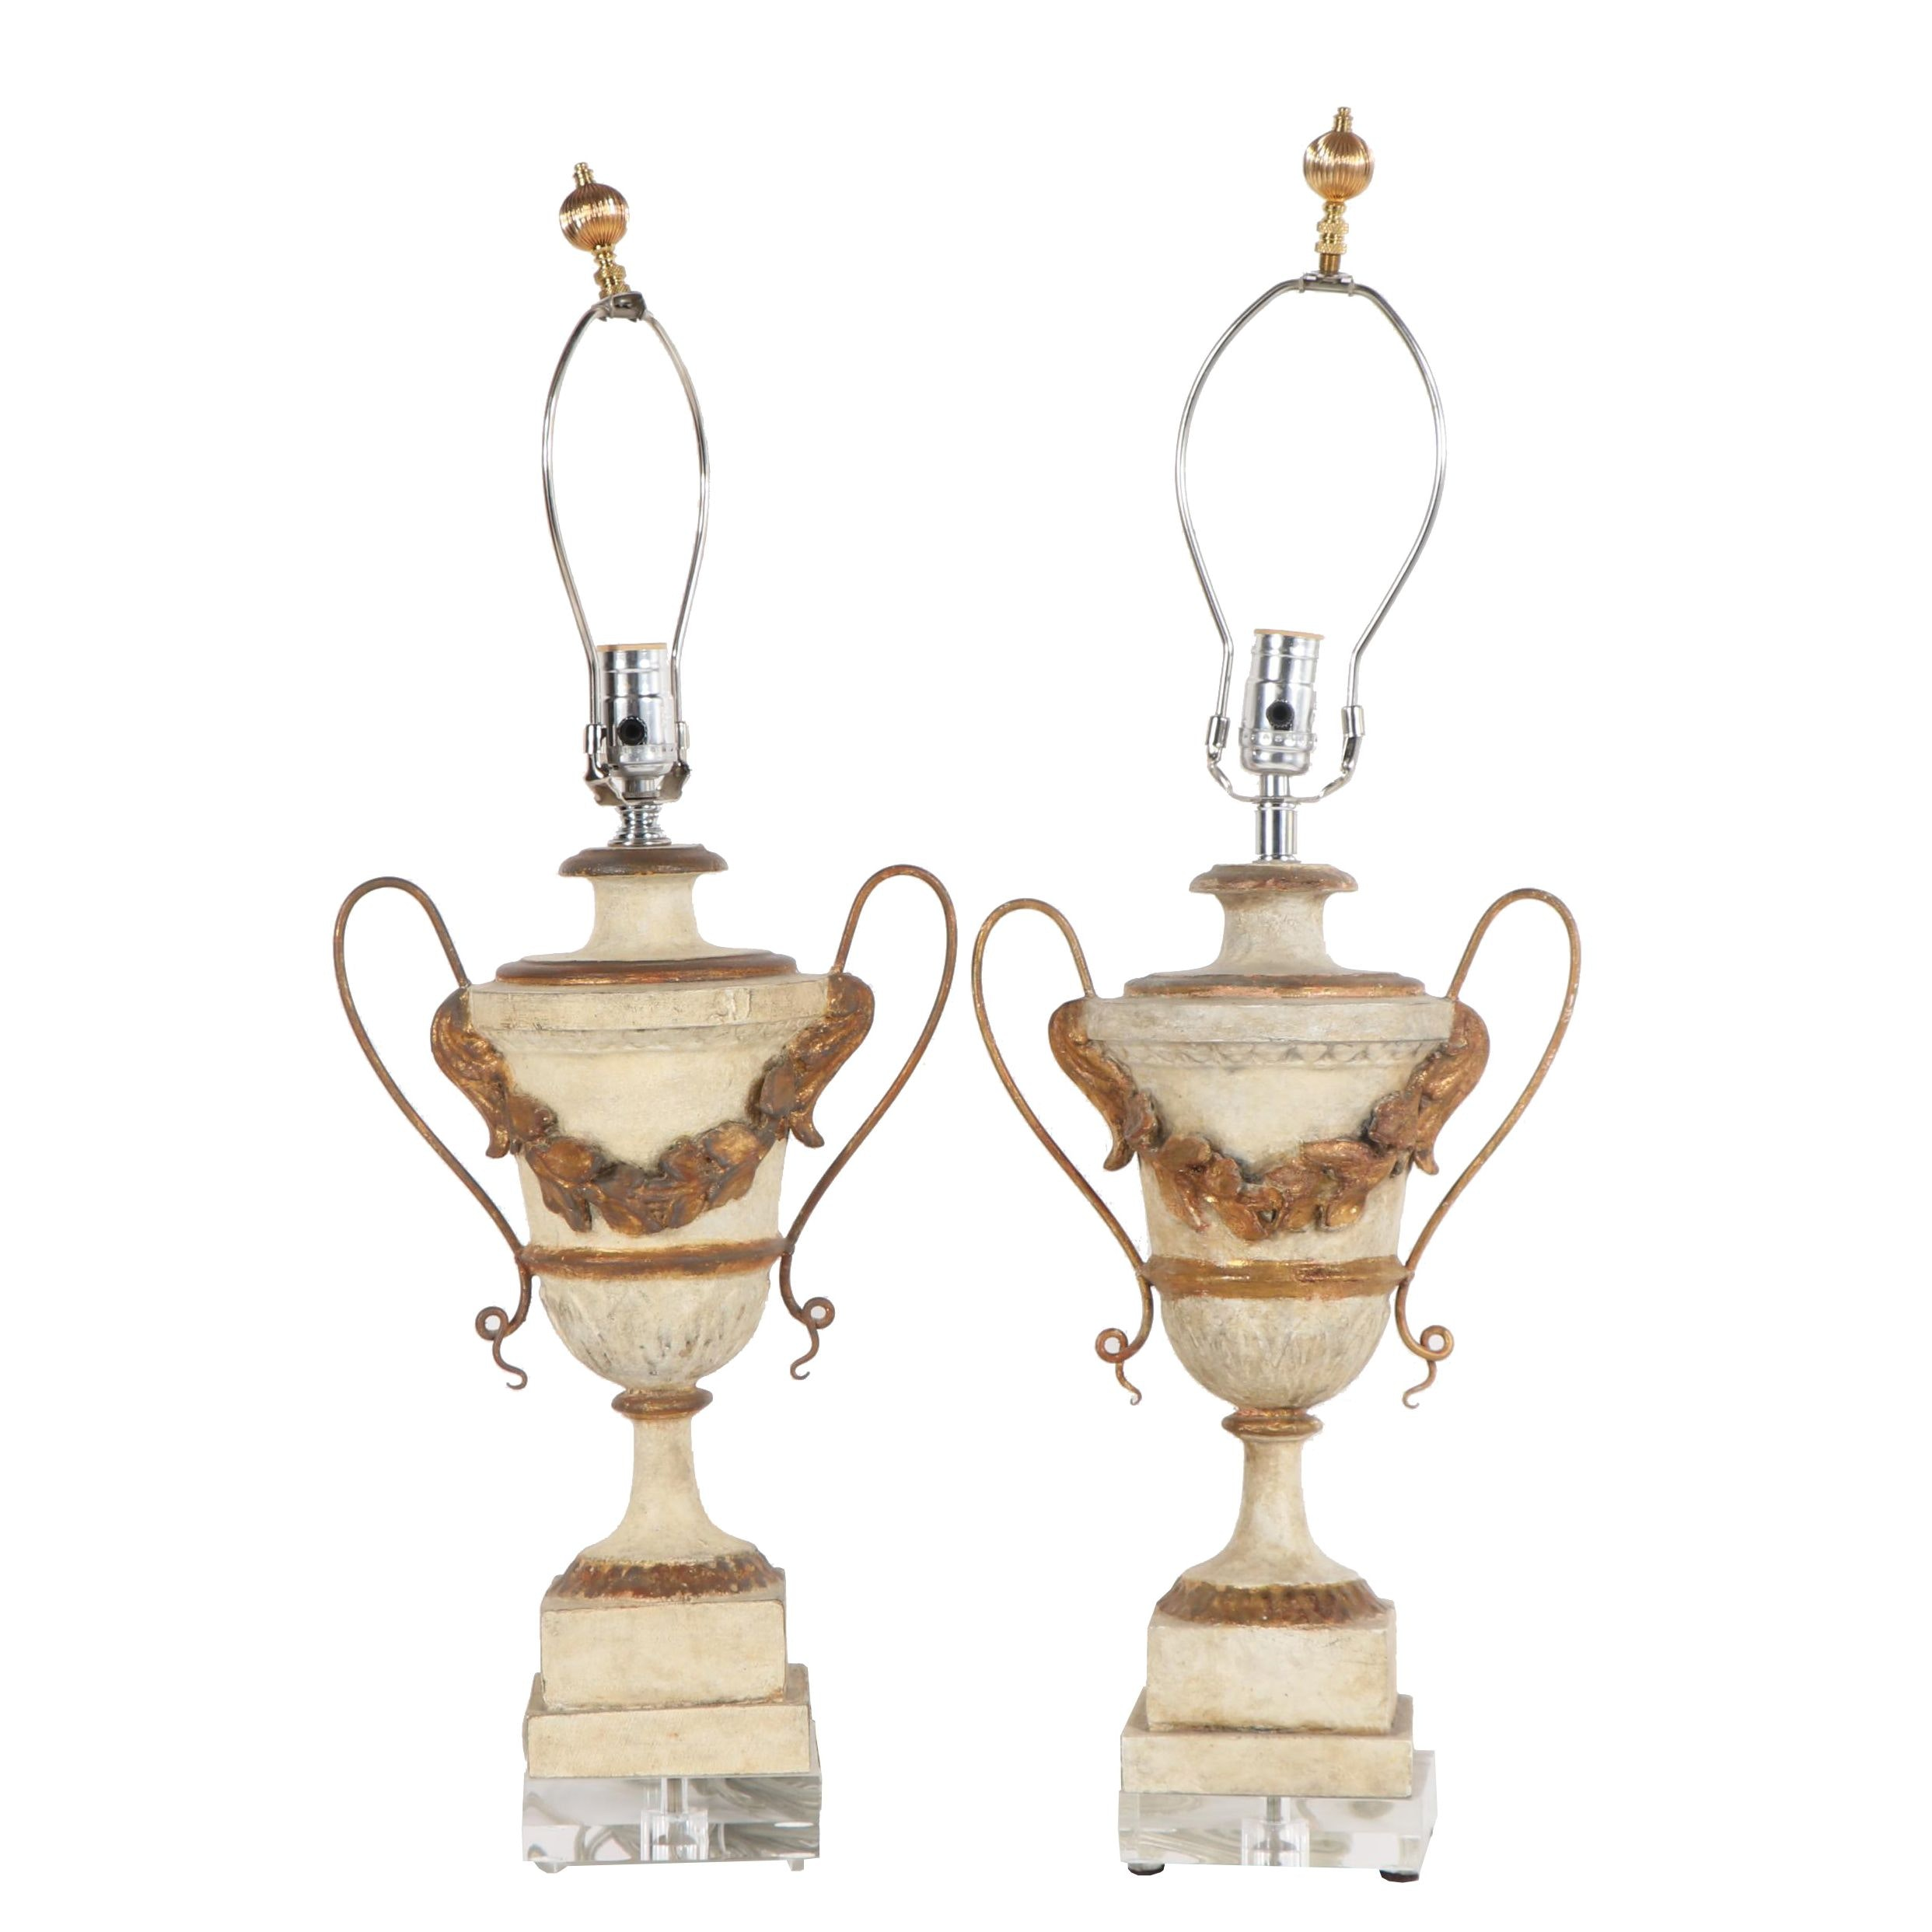 Neoclassical Style Urn Shaped Lamps with Acrylic Bases